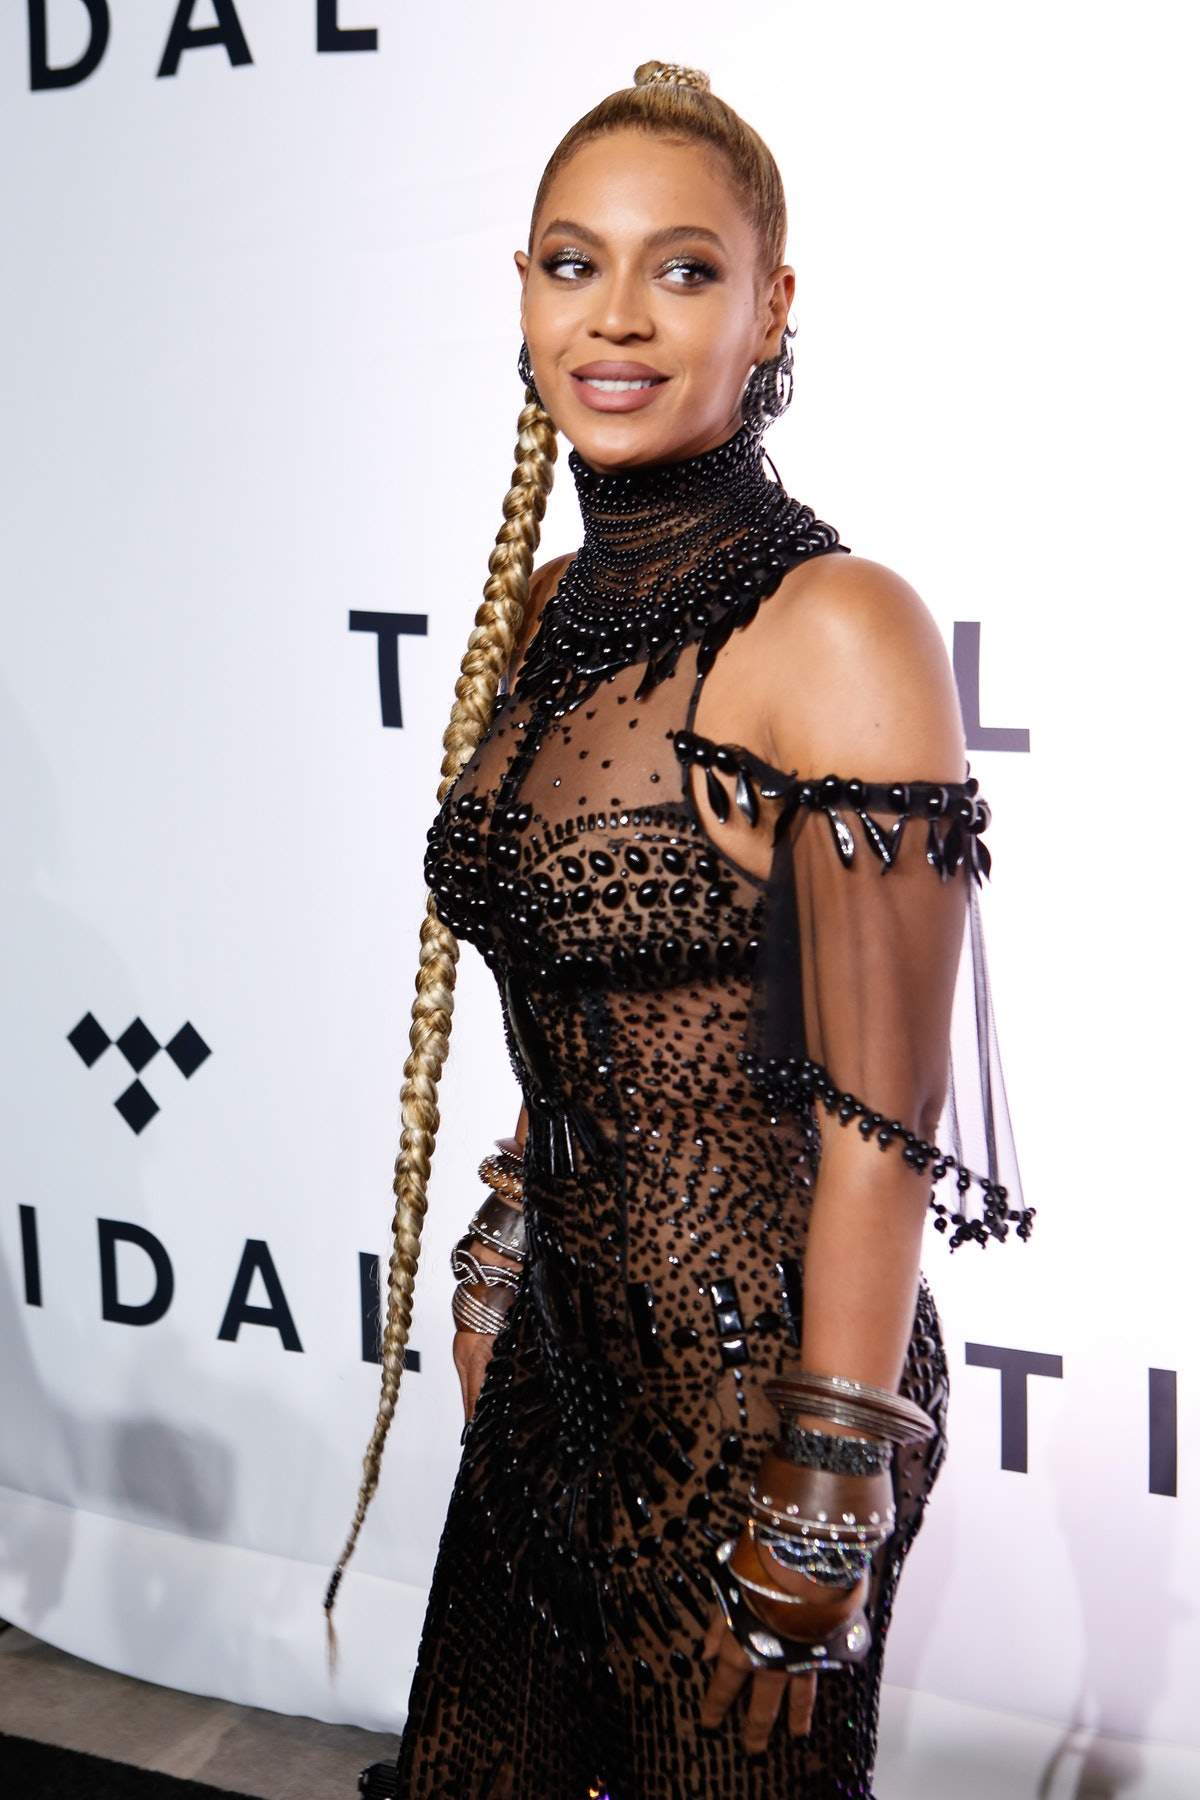 Beyonce attends the TIDAL's Second Annual Philanthropic Festival in a black gown at Barclays Center ...